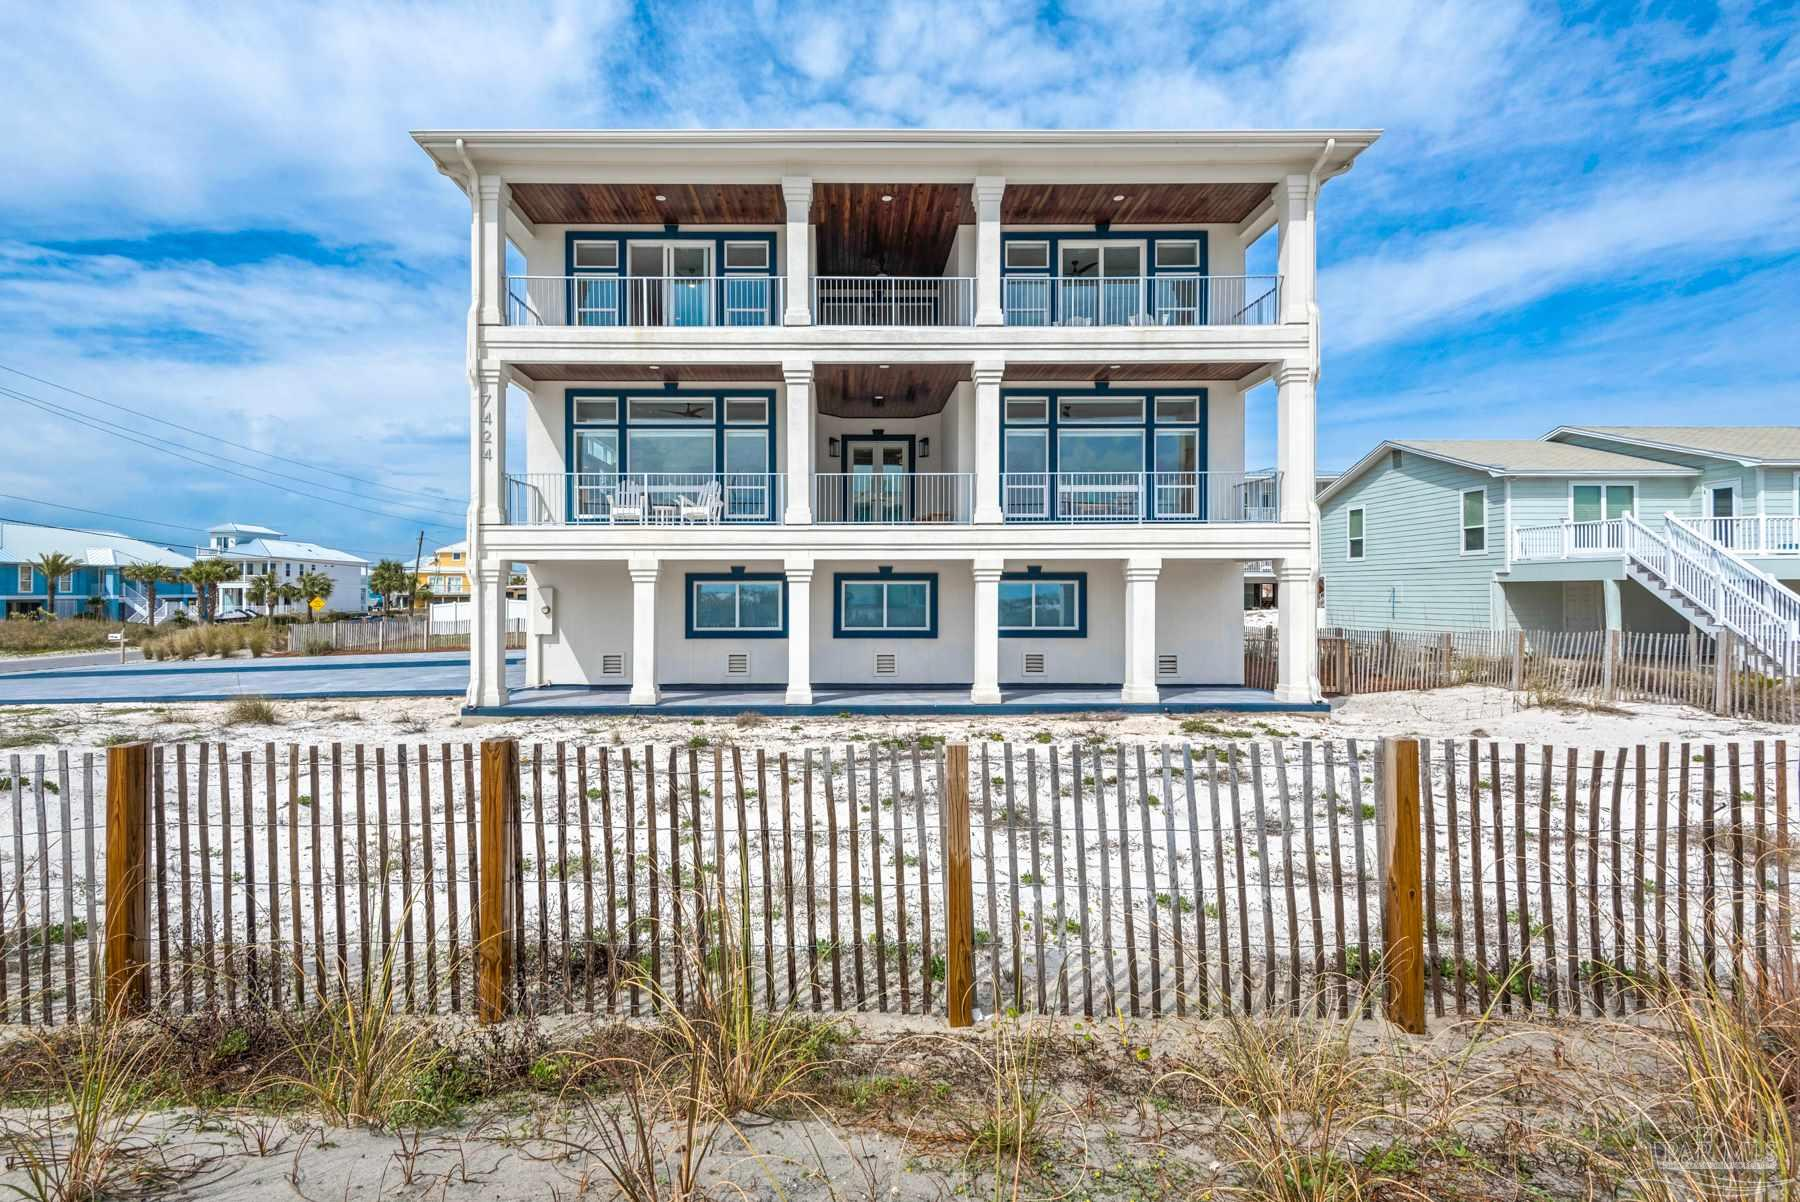 """This one of a kind luxury home is located on Navarre Beach on the beautiful white sands of Santa Rosa Island.  This up and coming location has been Florida's best kept secret, but word is getting out and plans are in the works that makes Navarre Beach the place to be! The grandeur of this newly renovated home boasts all the sophisticated luxury you are looking for.  With water views from every window, and an unobstructed South water view, you can watch dolphins play on the gulf side from the sitting room with extra large windows, or catch amazing sunsets from any of the covered or uncovered porches.  This home comes fully furnished and has been equipped with so many extras.  The incredible 24""""x24"""" Italian Marble floor on the main level, and this kitchen would make an executive chef envious.  With top of the line appliances, Natural Quartzite on the 9' island and countertops and the open floor plan, cooking in this kitchen is a pleasure.  With so much to see and admire, don't forget to look up at the marvelous custom made chandelier that is the star of the living area,  a wench was installed for ease of maintenance. There are two bedrooms that could serve as the master bedroom, one on each floor.  There is an additional 3rd bedroom with an en suite.  Some not so obvious extras are the porch's custom solid aluminum rails with automotive finish, whole house water purification system, air scrubbers attached to both AC units for air purification, three water heaters, whole house surge protectors, the list goes on and on.  All of this on a large lot with room for a pool, a quick and easy 100 yard walk to the pristine white sand beaches and just 500 yards to the award winning Gulf Island National Seashore. Call today to make your appointment to see this spectacular property! Be sure to click on the first Virtual Tour and """"walk through"""" this home with the convenience of the matter port virtual tour."""